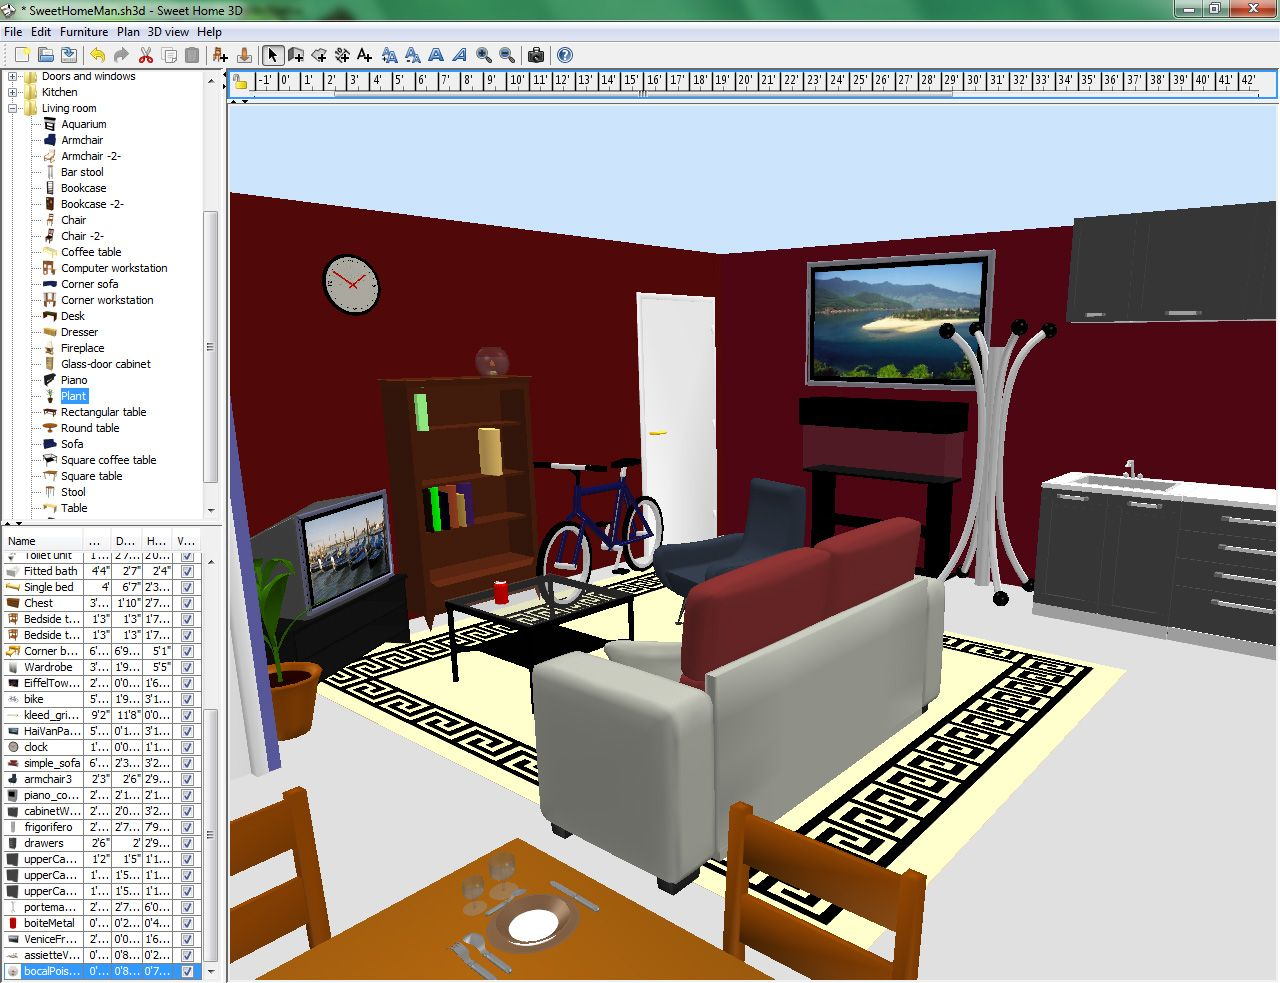 3d Interior Design Software For Mac Kitchen Design Chic What Program Can I Use To Design A Room V5 3 Sweet Home 3d Best Free Interior Design Application For Home Designer For